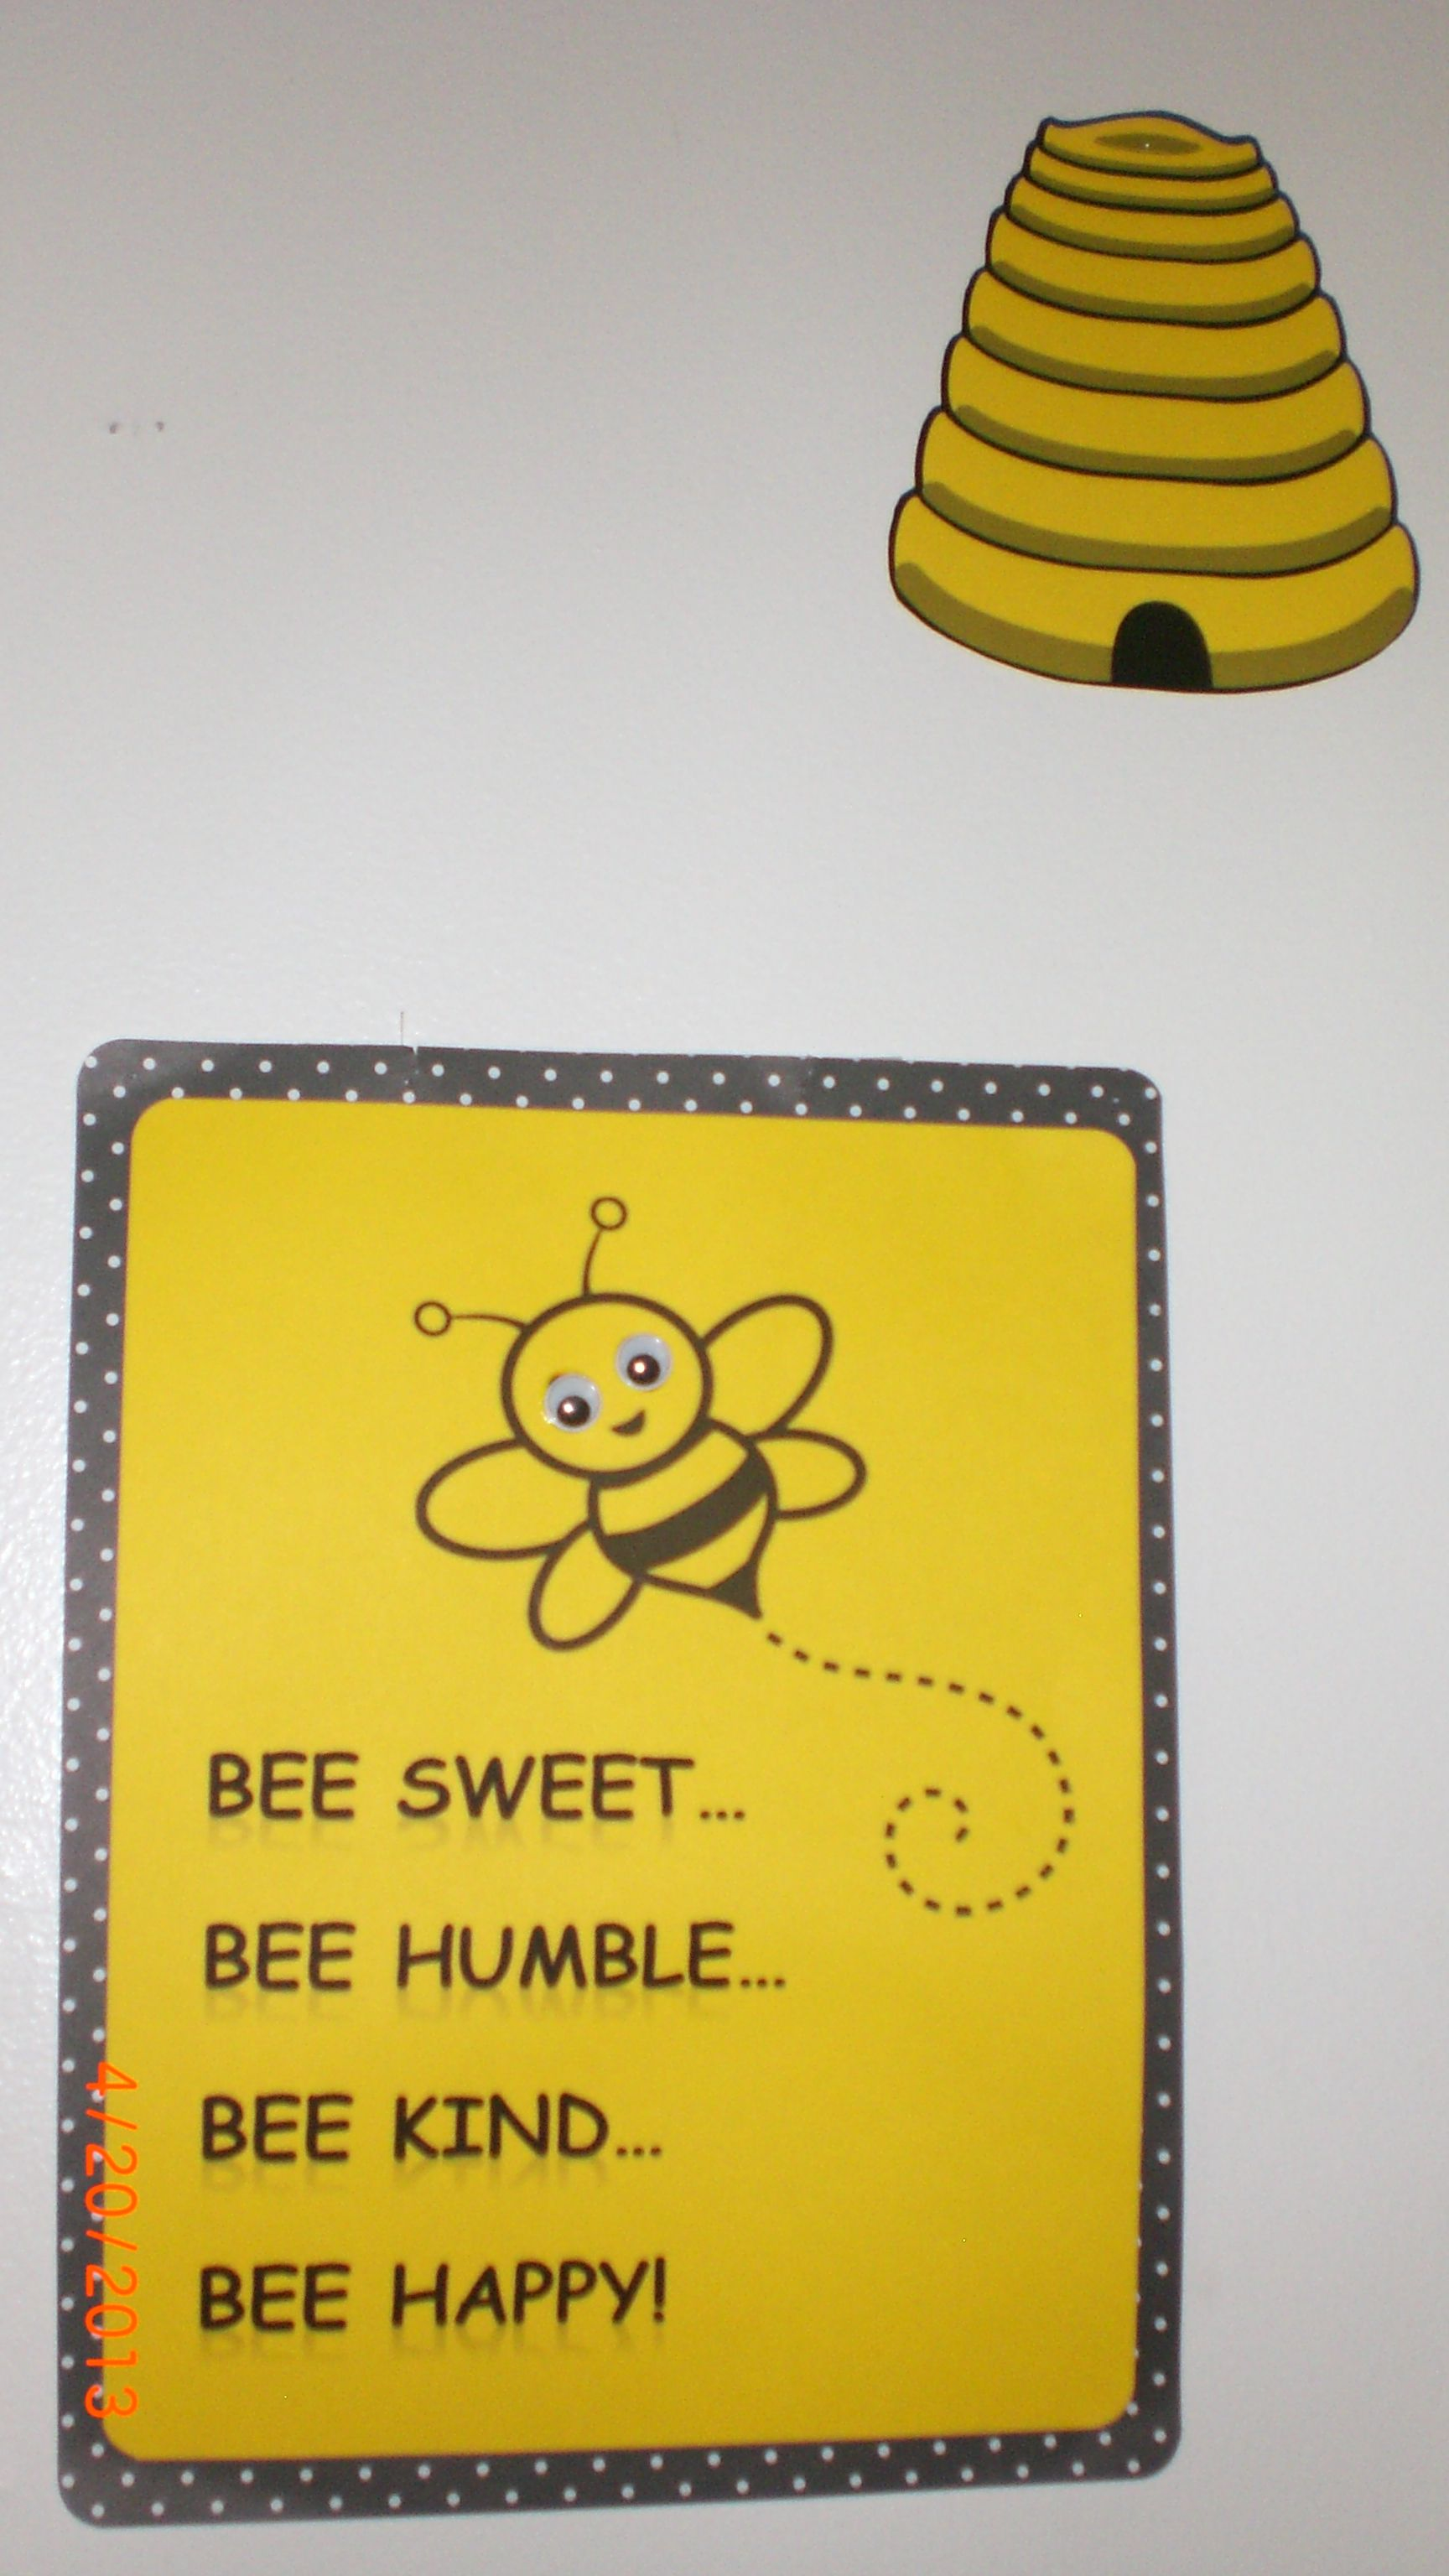 Bee Party...Just another Bee themed sign for wall décor.